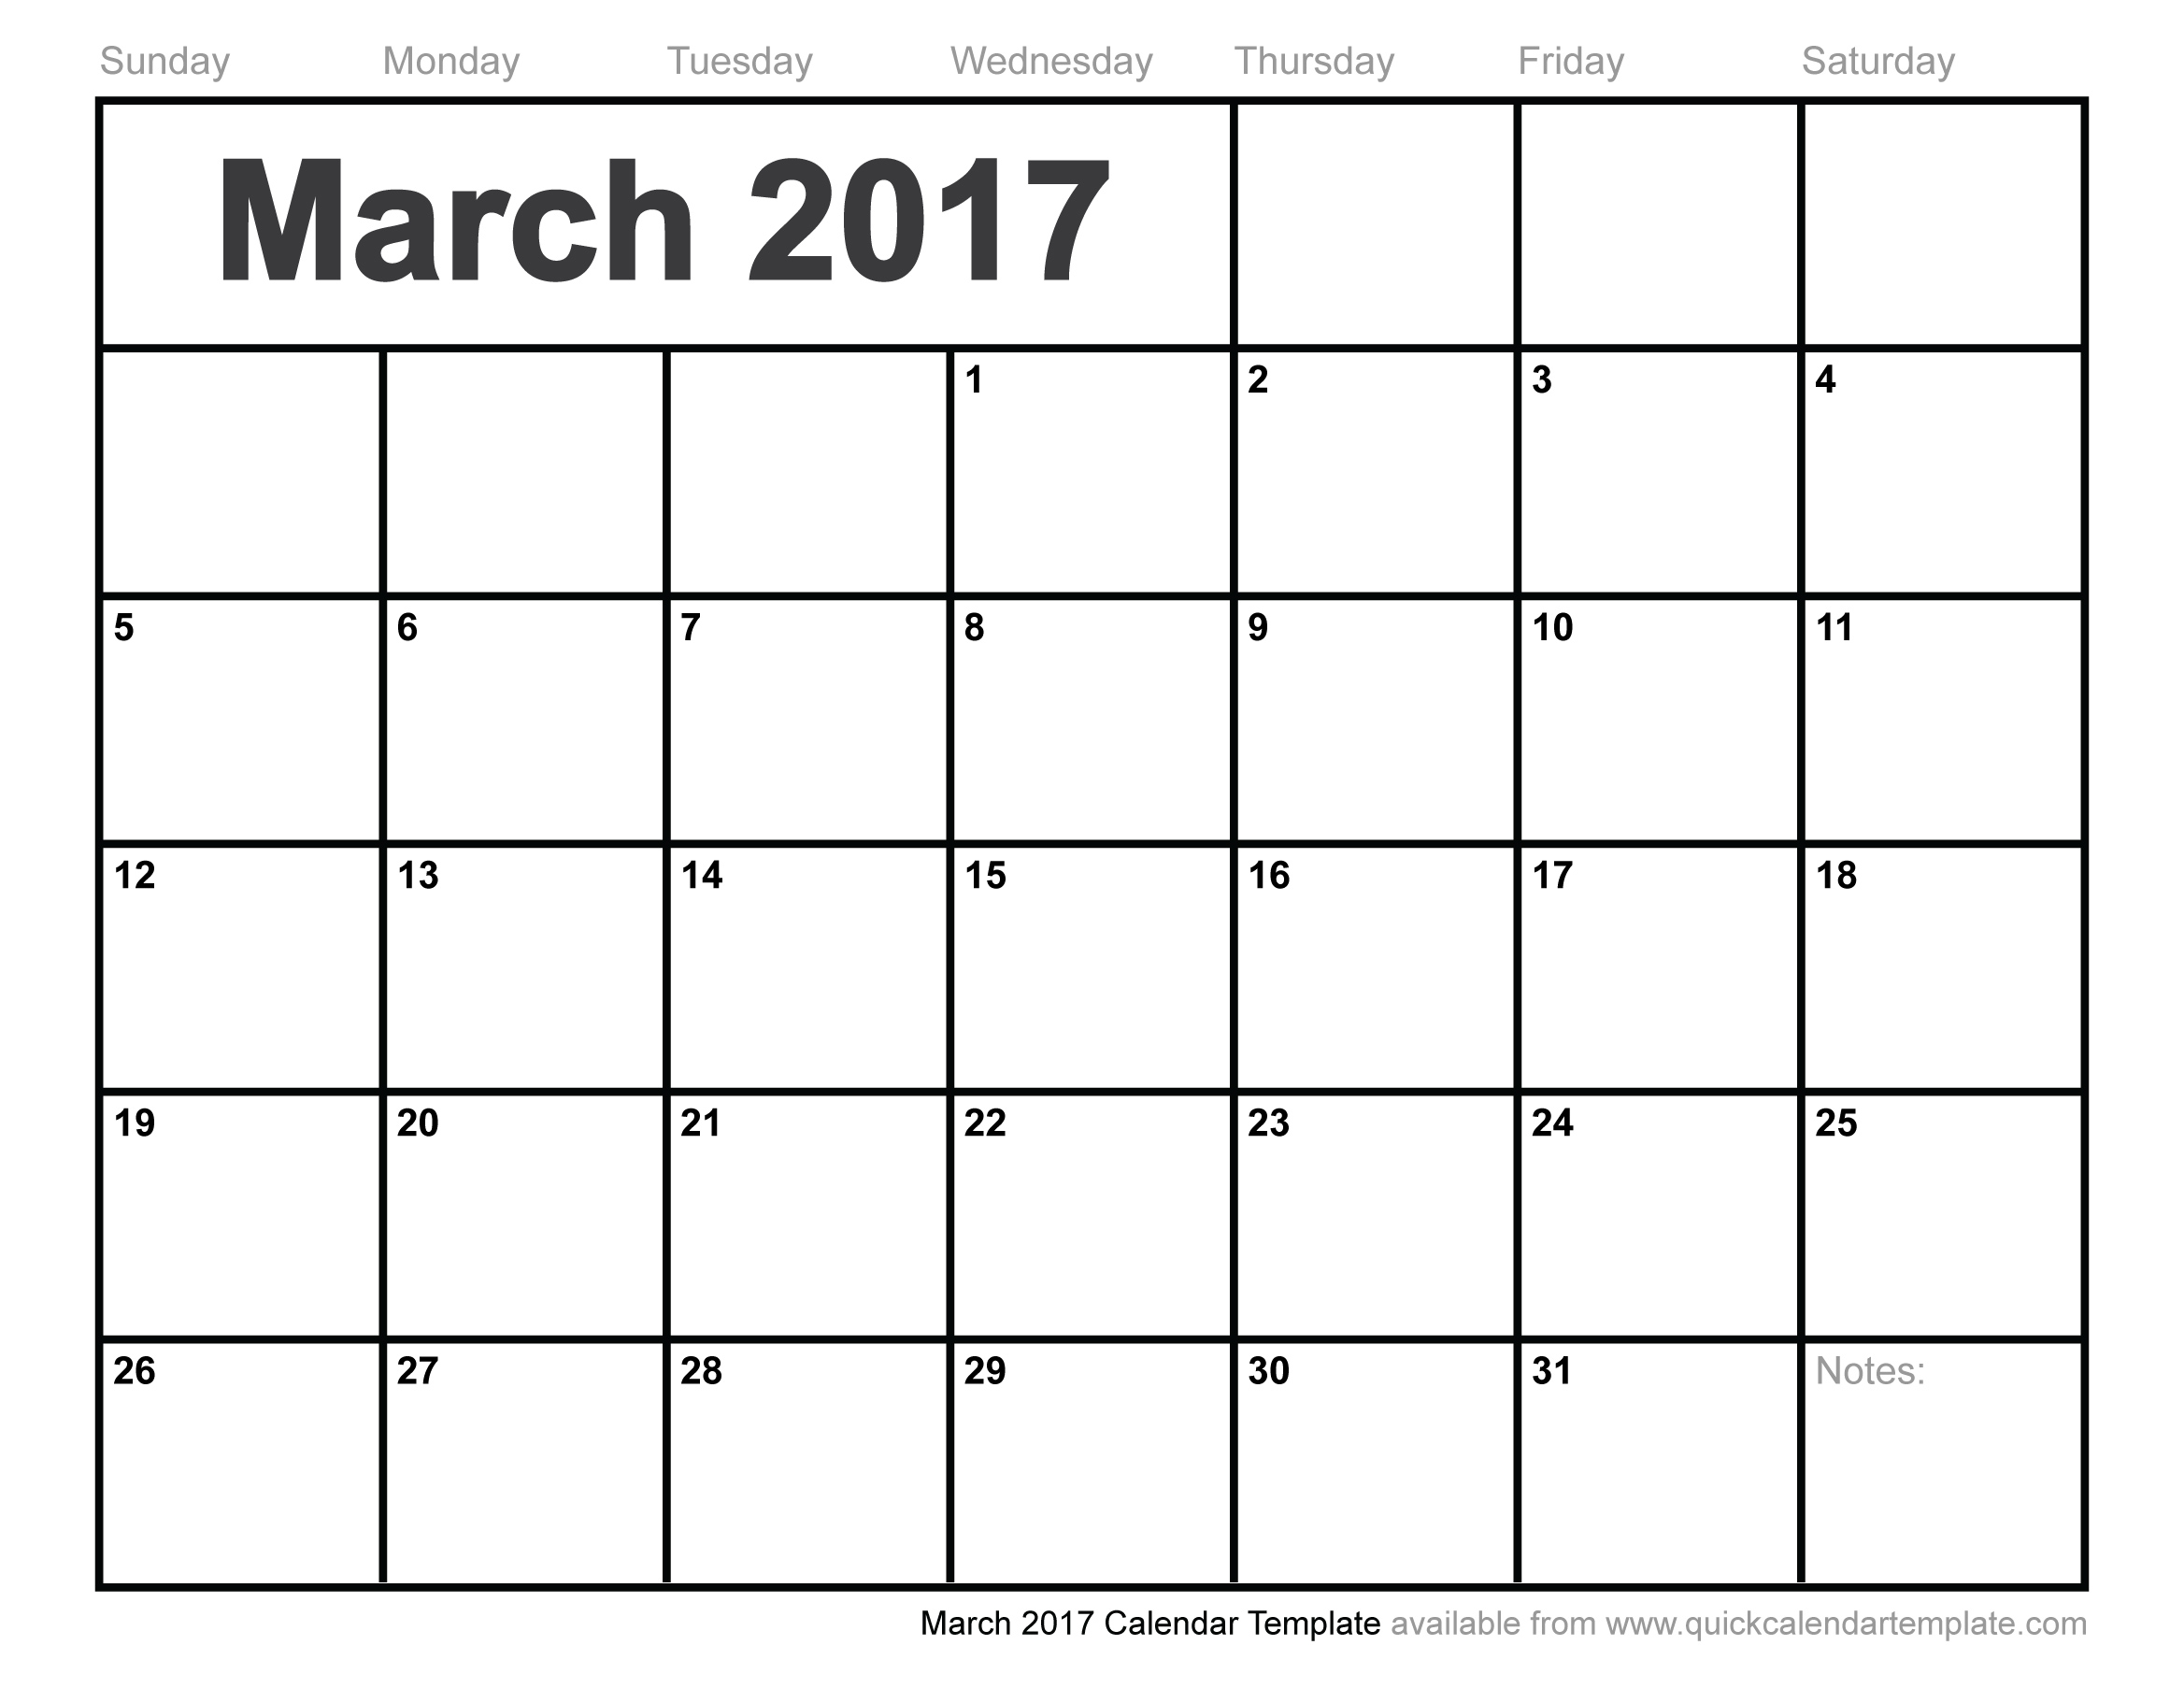 Free-Blank-Printable-March-2017-Calendar-Template in Pretty Calendar Template Printable March